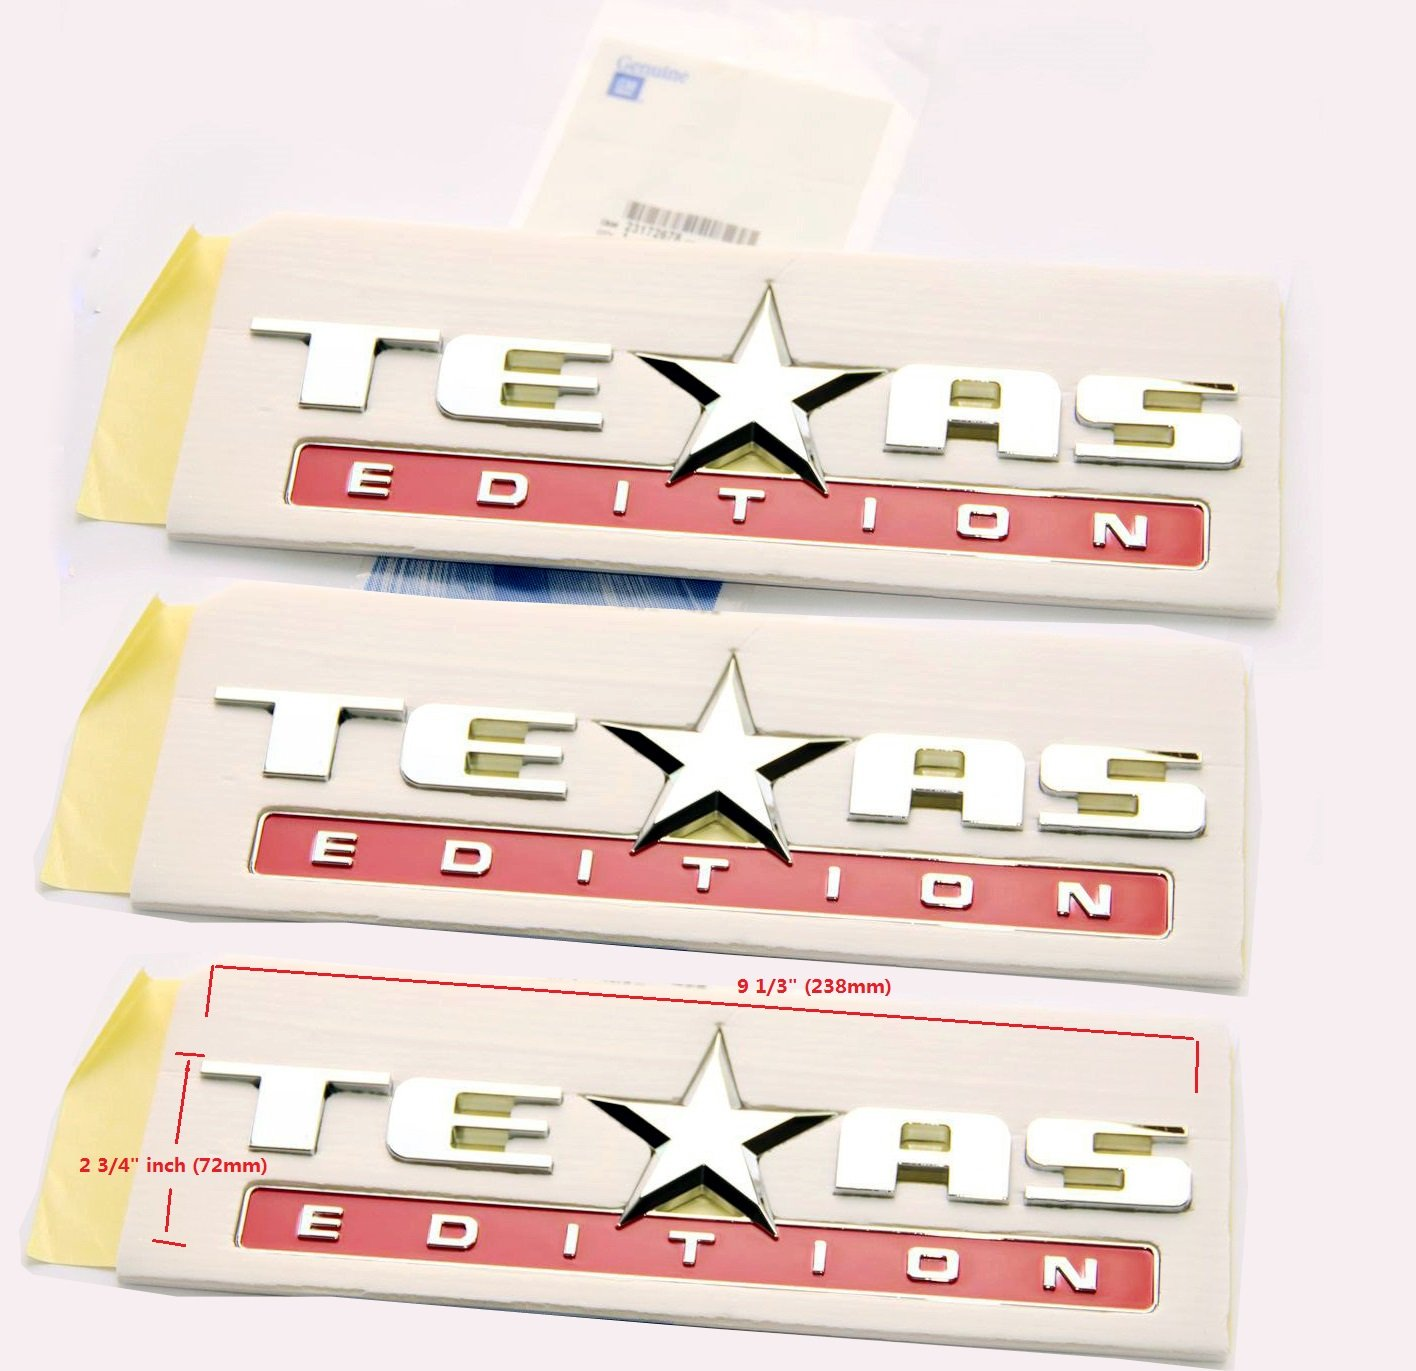 Yoaoo-oem/® 3pcs OEM Chrome Sierra Texas Edition Emblem Badge for Chevrolet 07-14 Silverado and Gm GMC 3pcs silver2